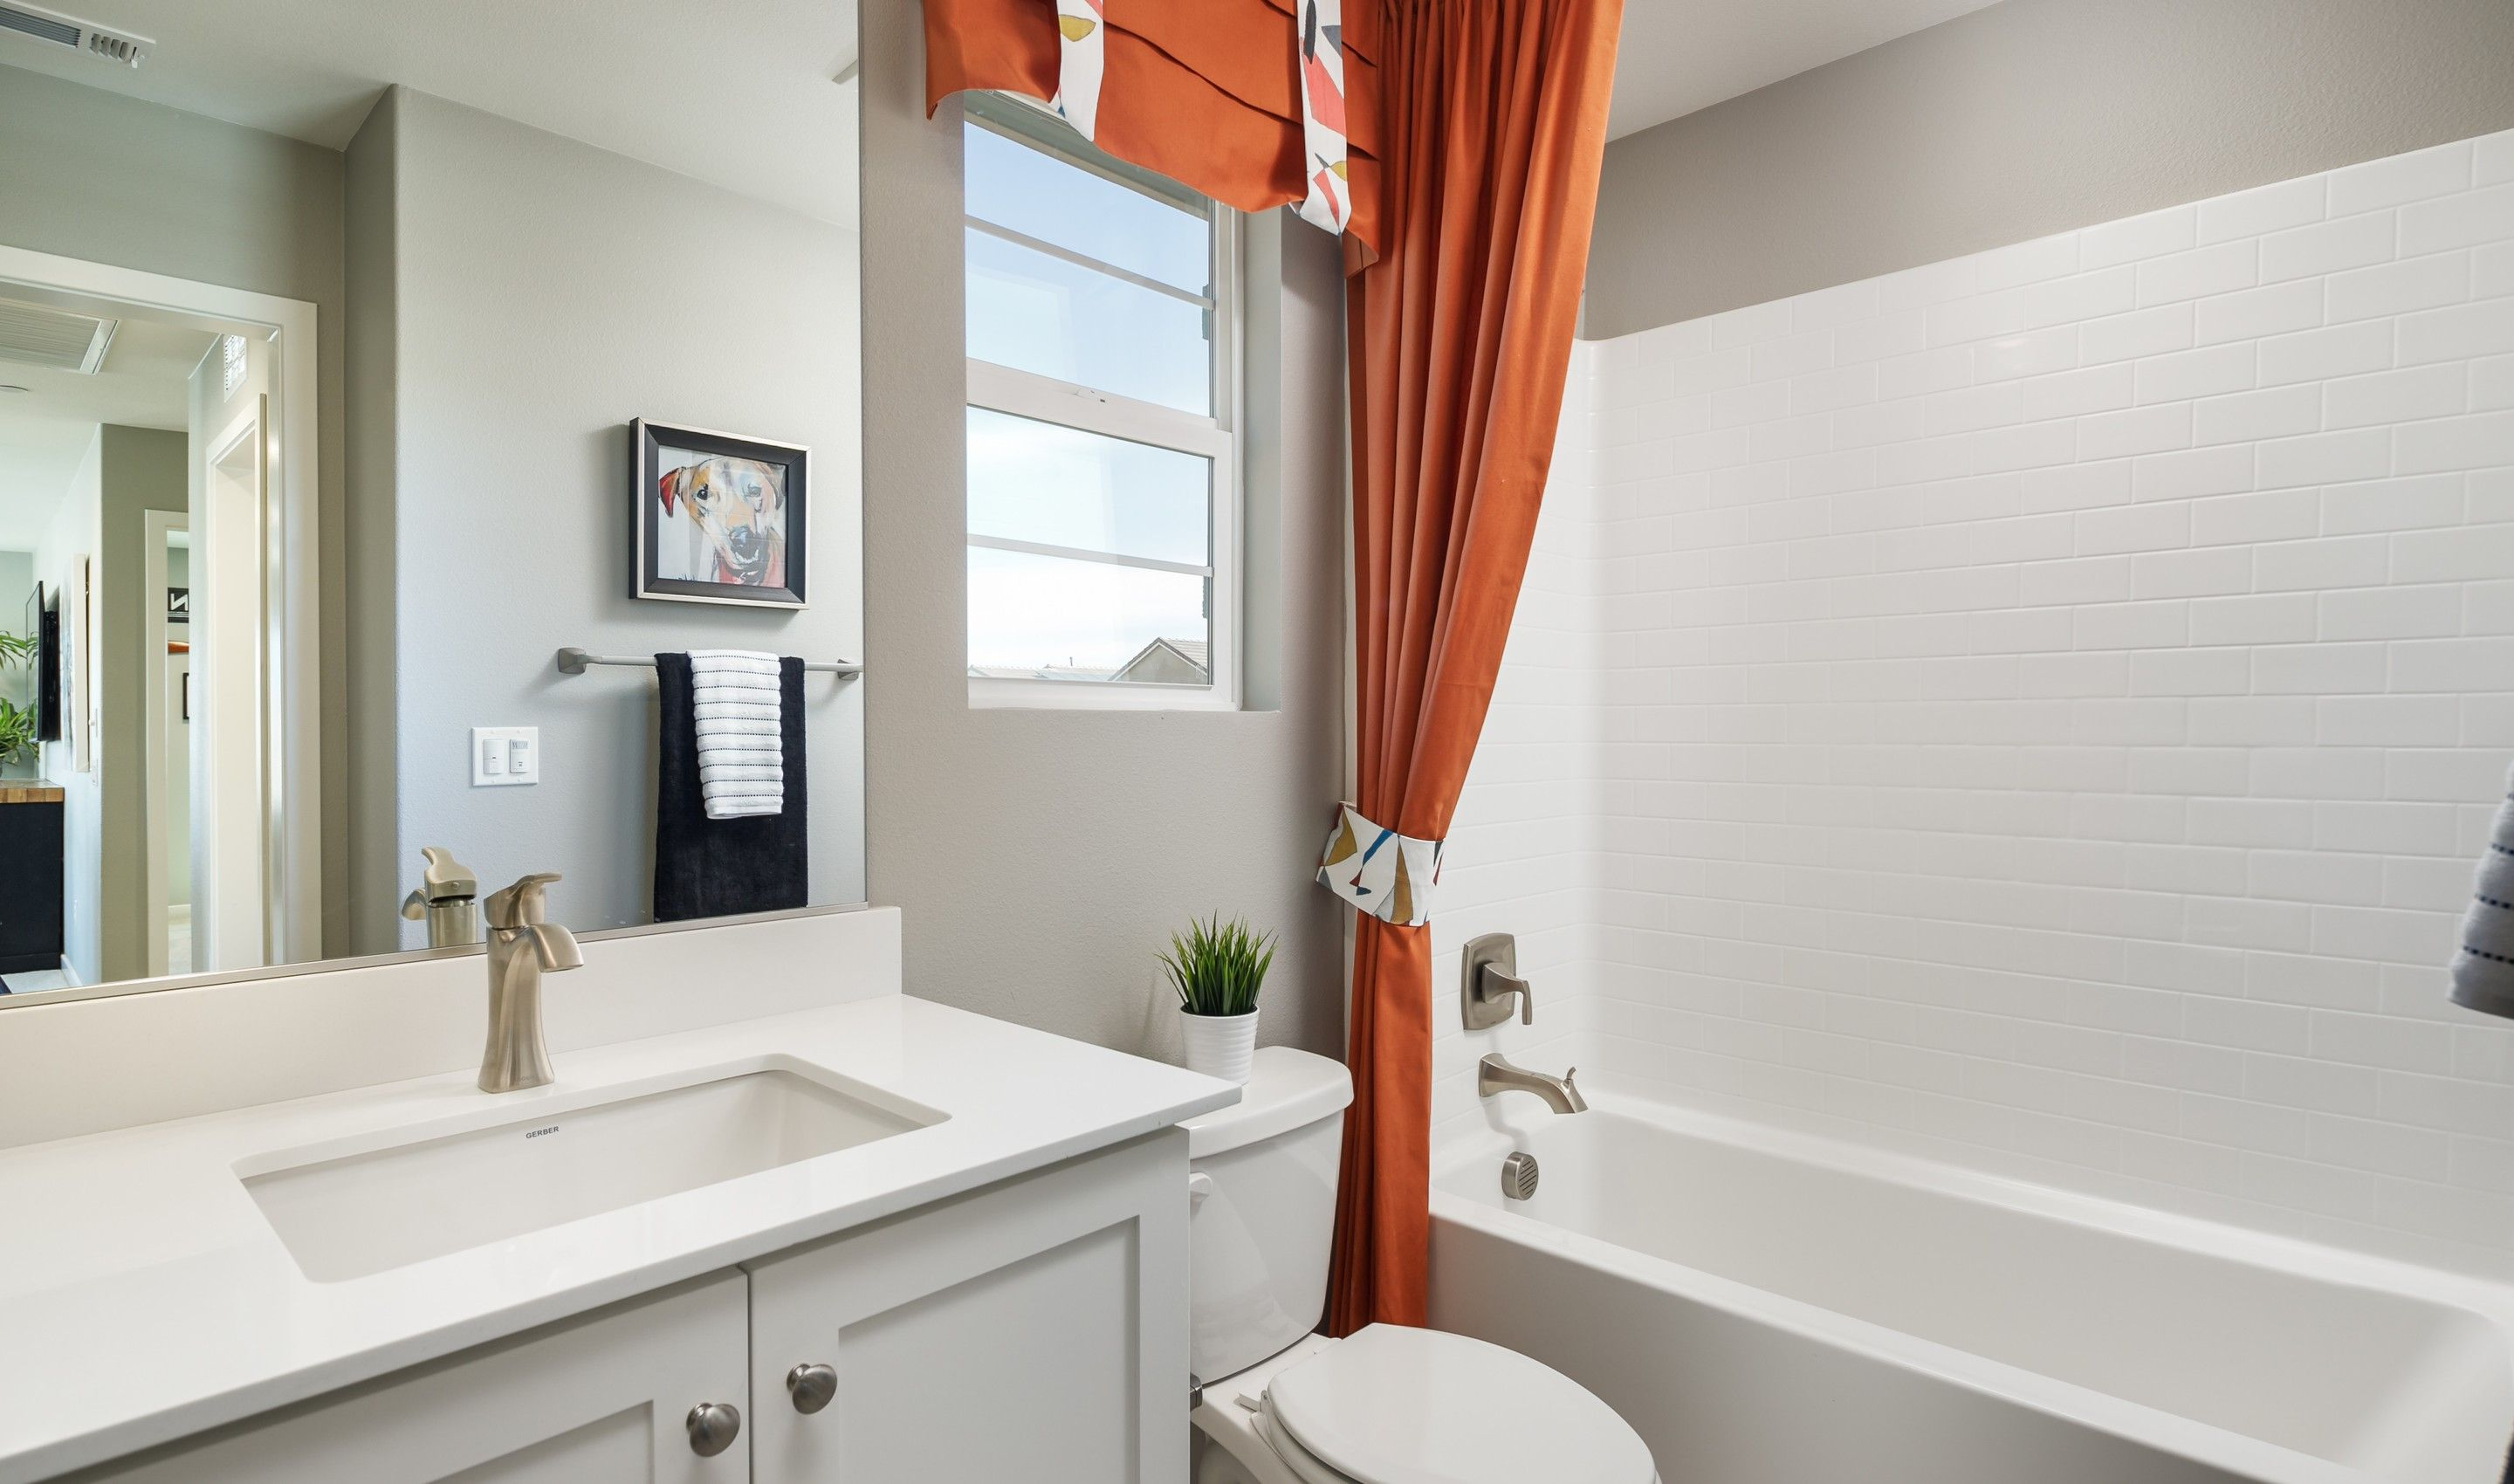 Bathroom featured in the Sunrise By K. Hovnanian® Homes in Ventura, CA